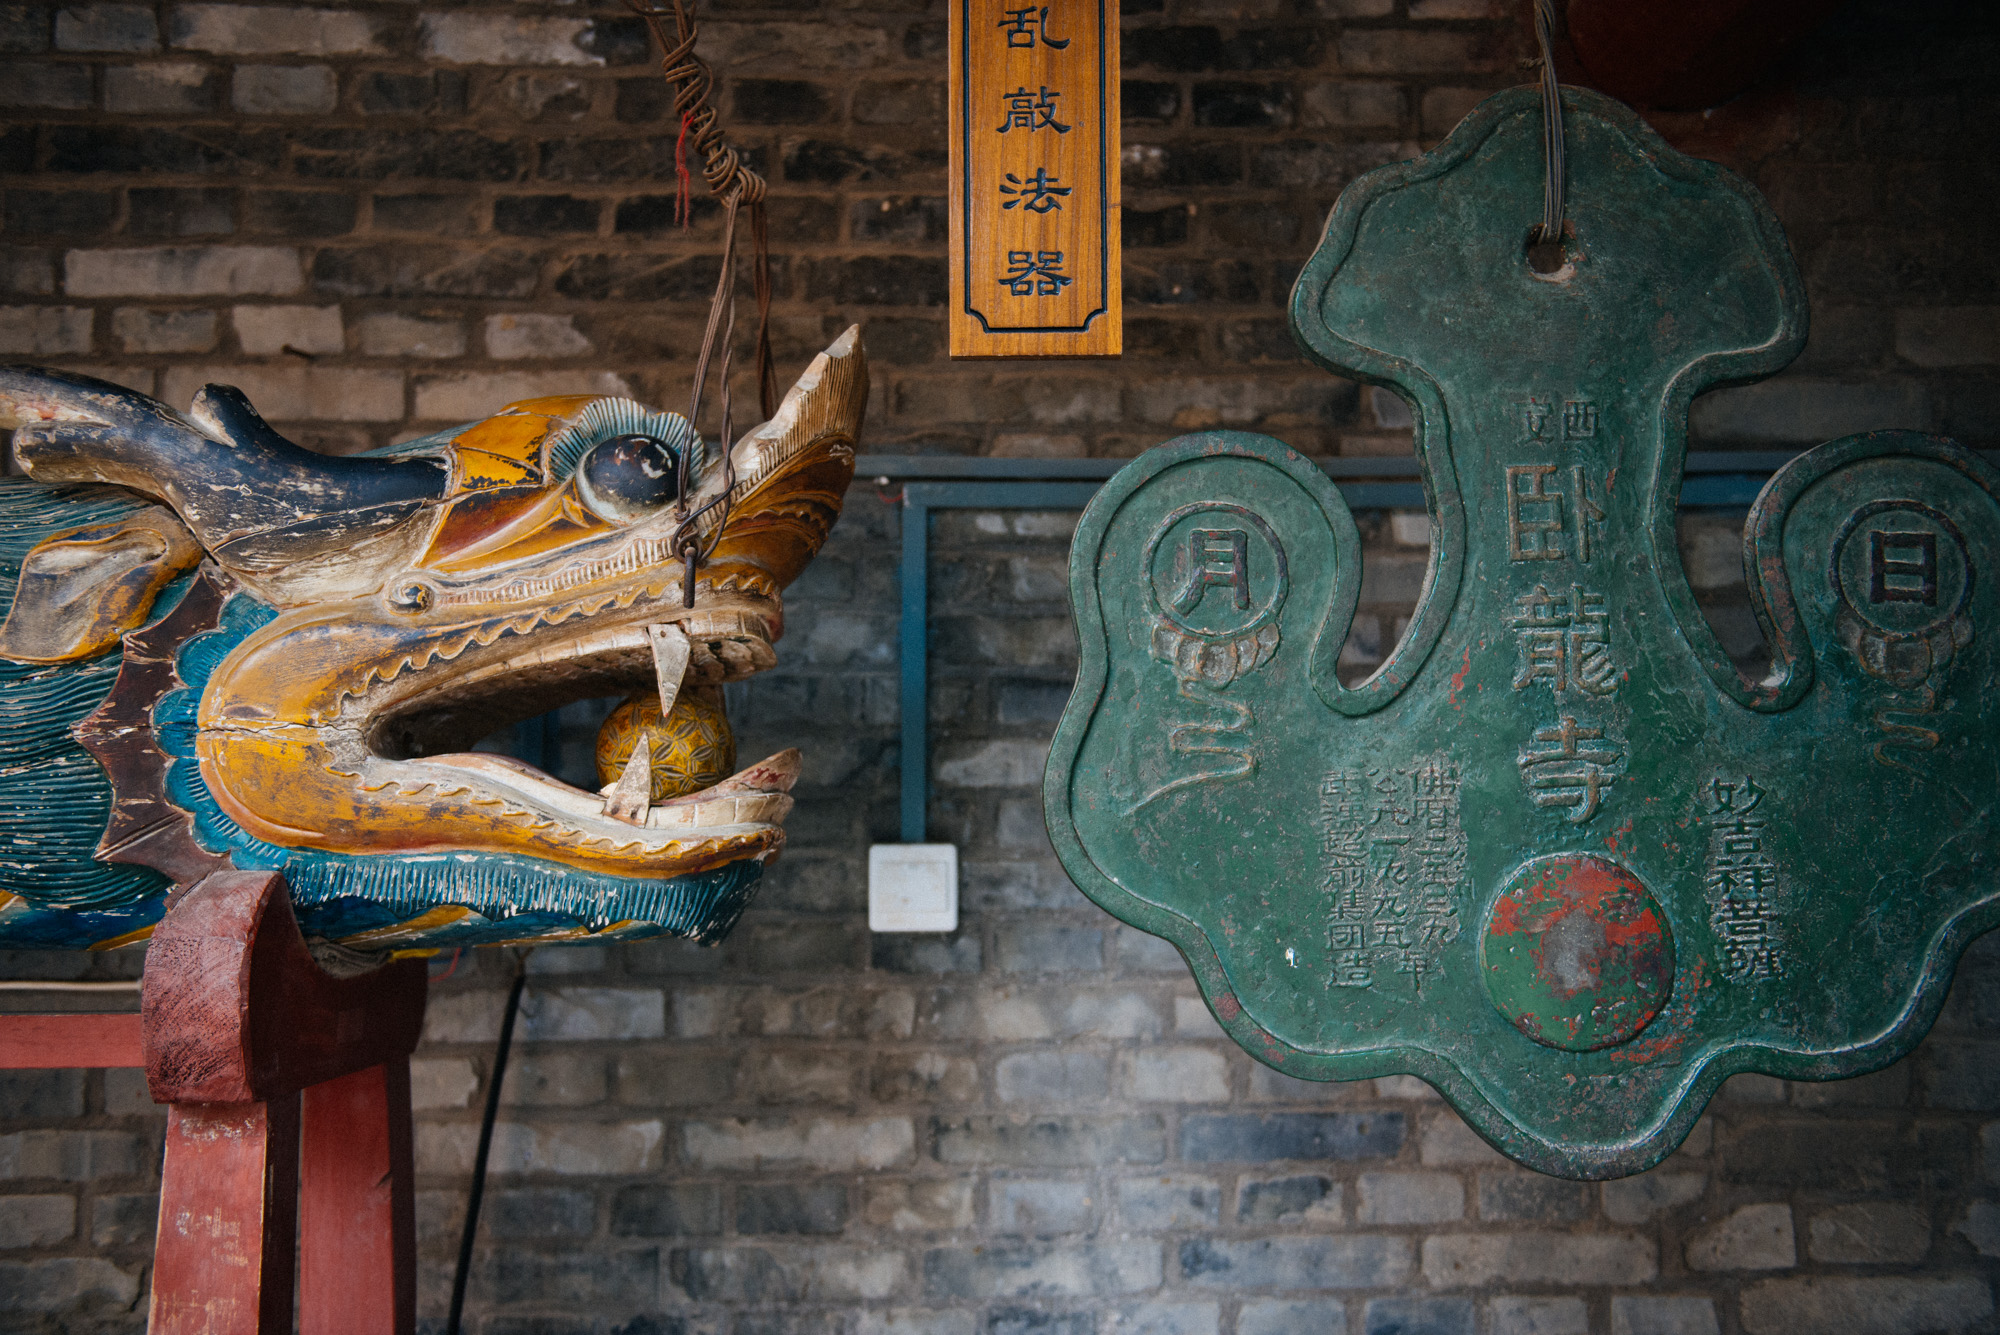 """To the right, a bell-like structure and to the left the thing to bang it with. You can see 卧龙寺 (Wolong Temple) written on the """"bell"""" (I don't know how else to call this)."""